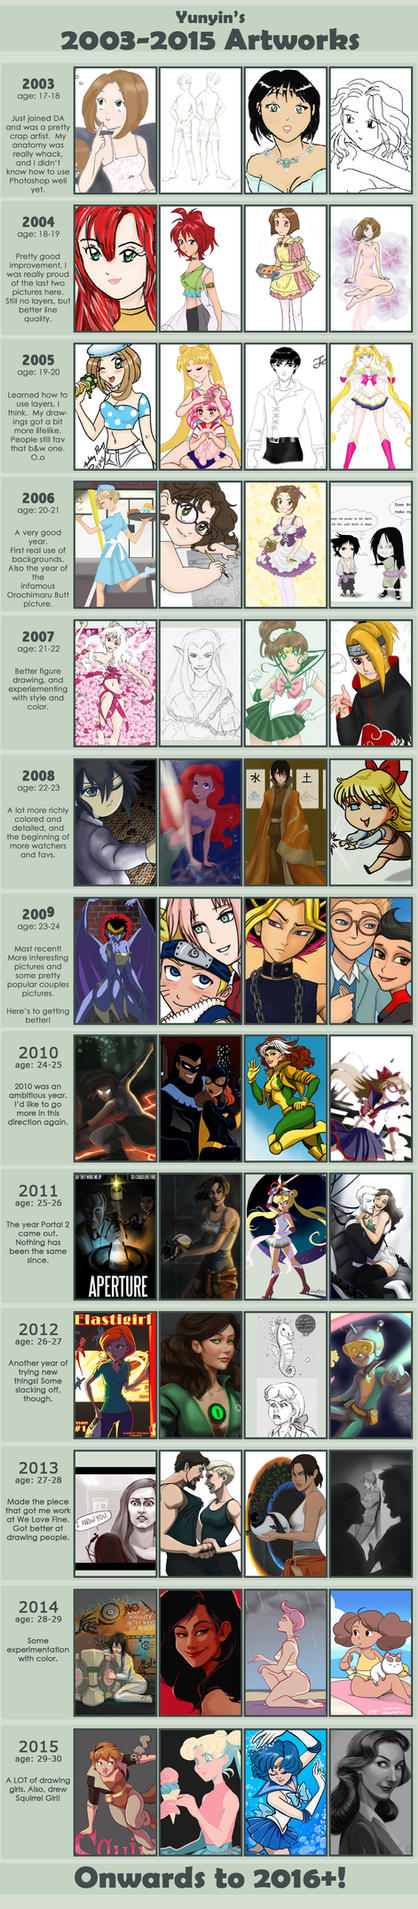 2003 to 2015 summary of art by Yunyin